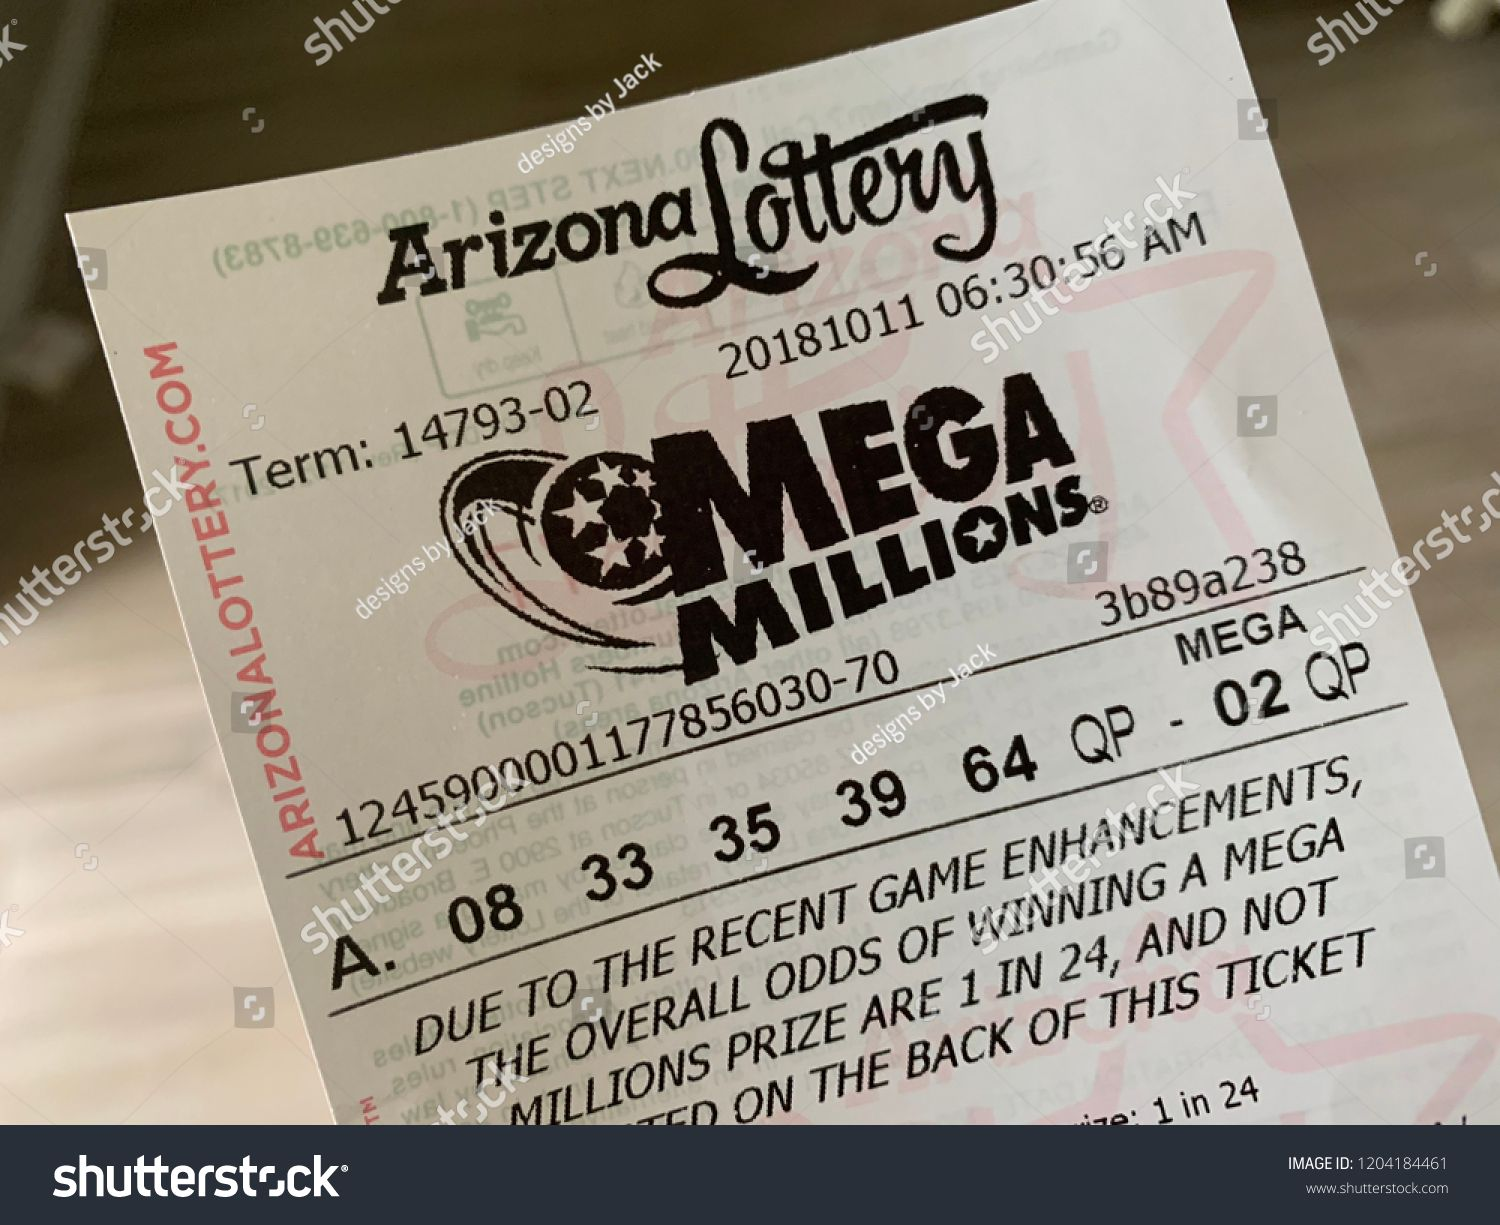 Phoenix, Arizona, October 11, 2018: Mega Millions Lottery